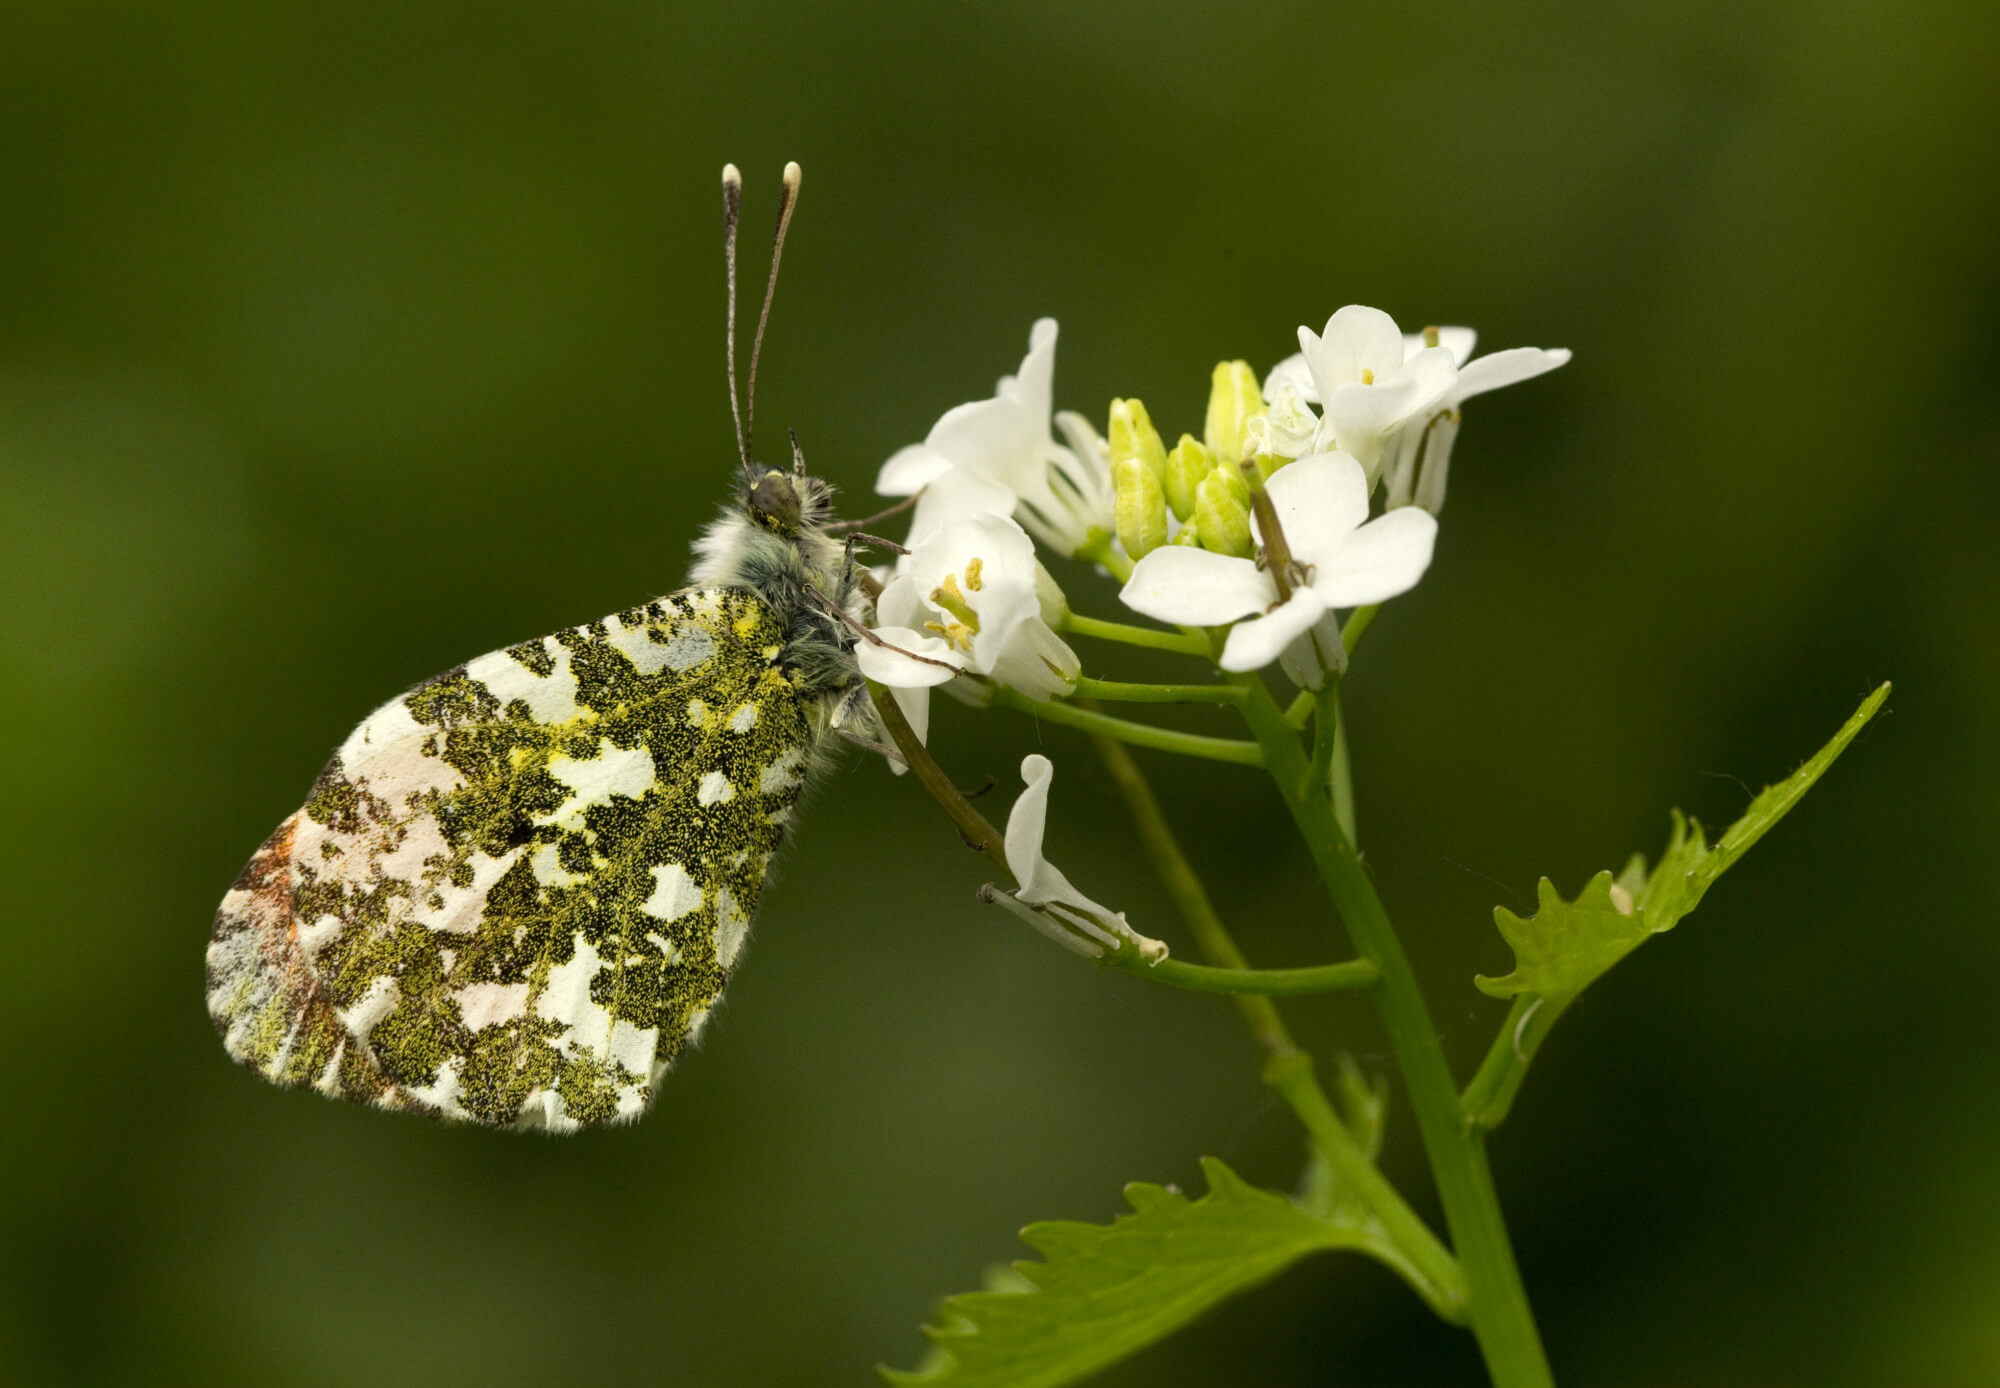 Orange-tip butterfly on garlic mustard plant